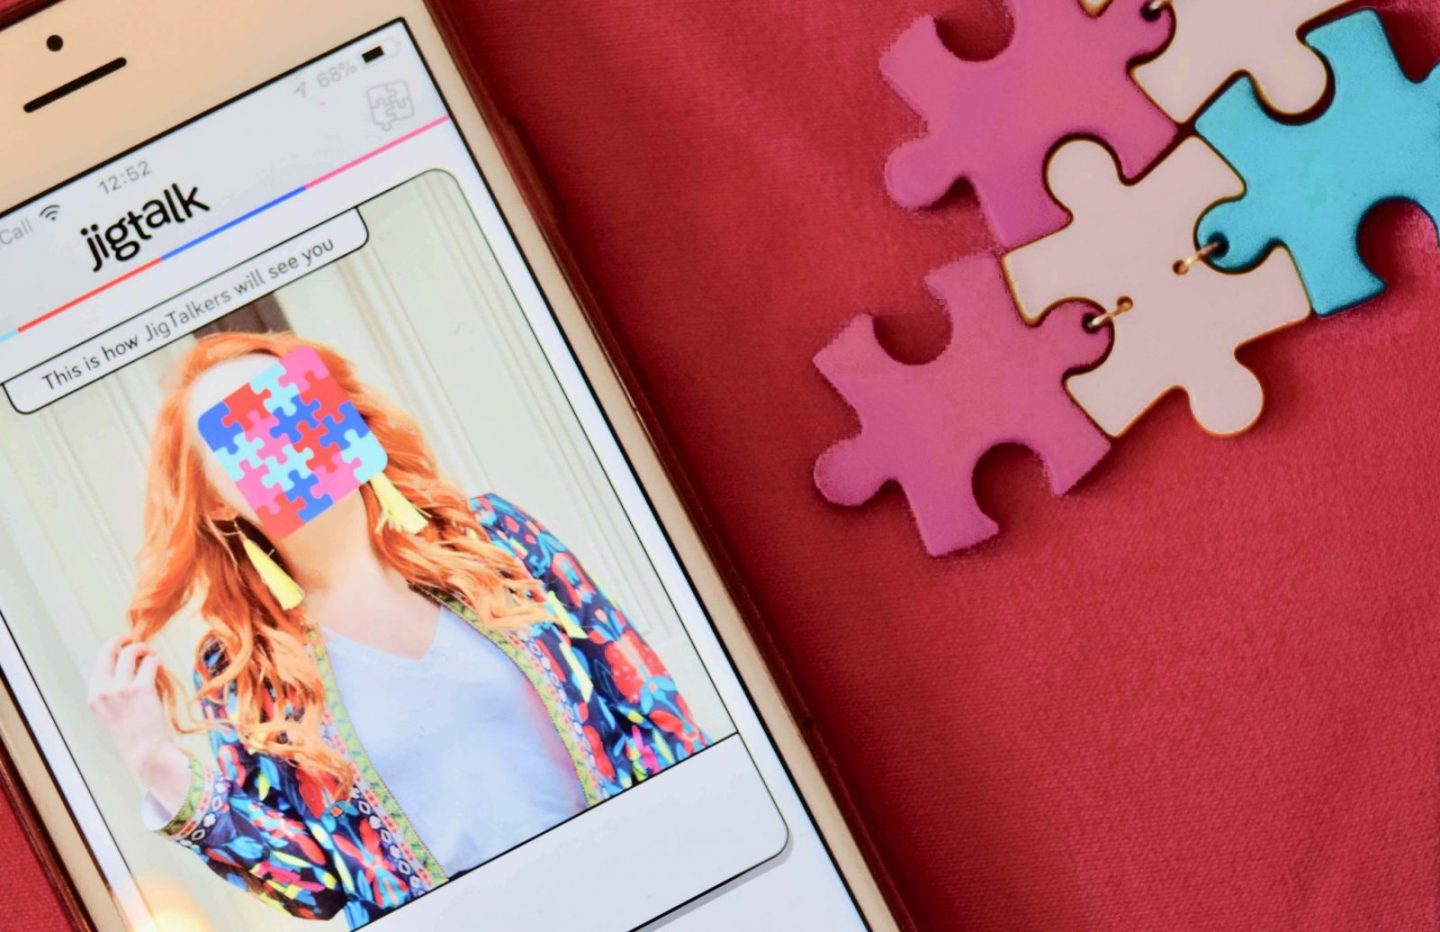 Getting jiggy with it: meet the latest dating app, JigTalk